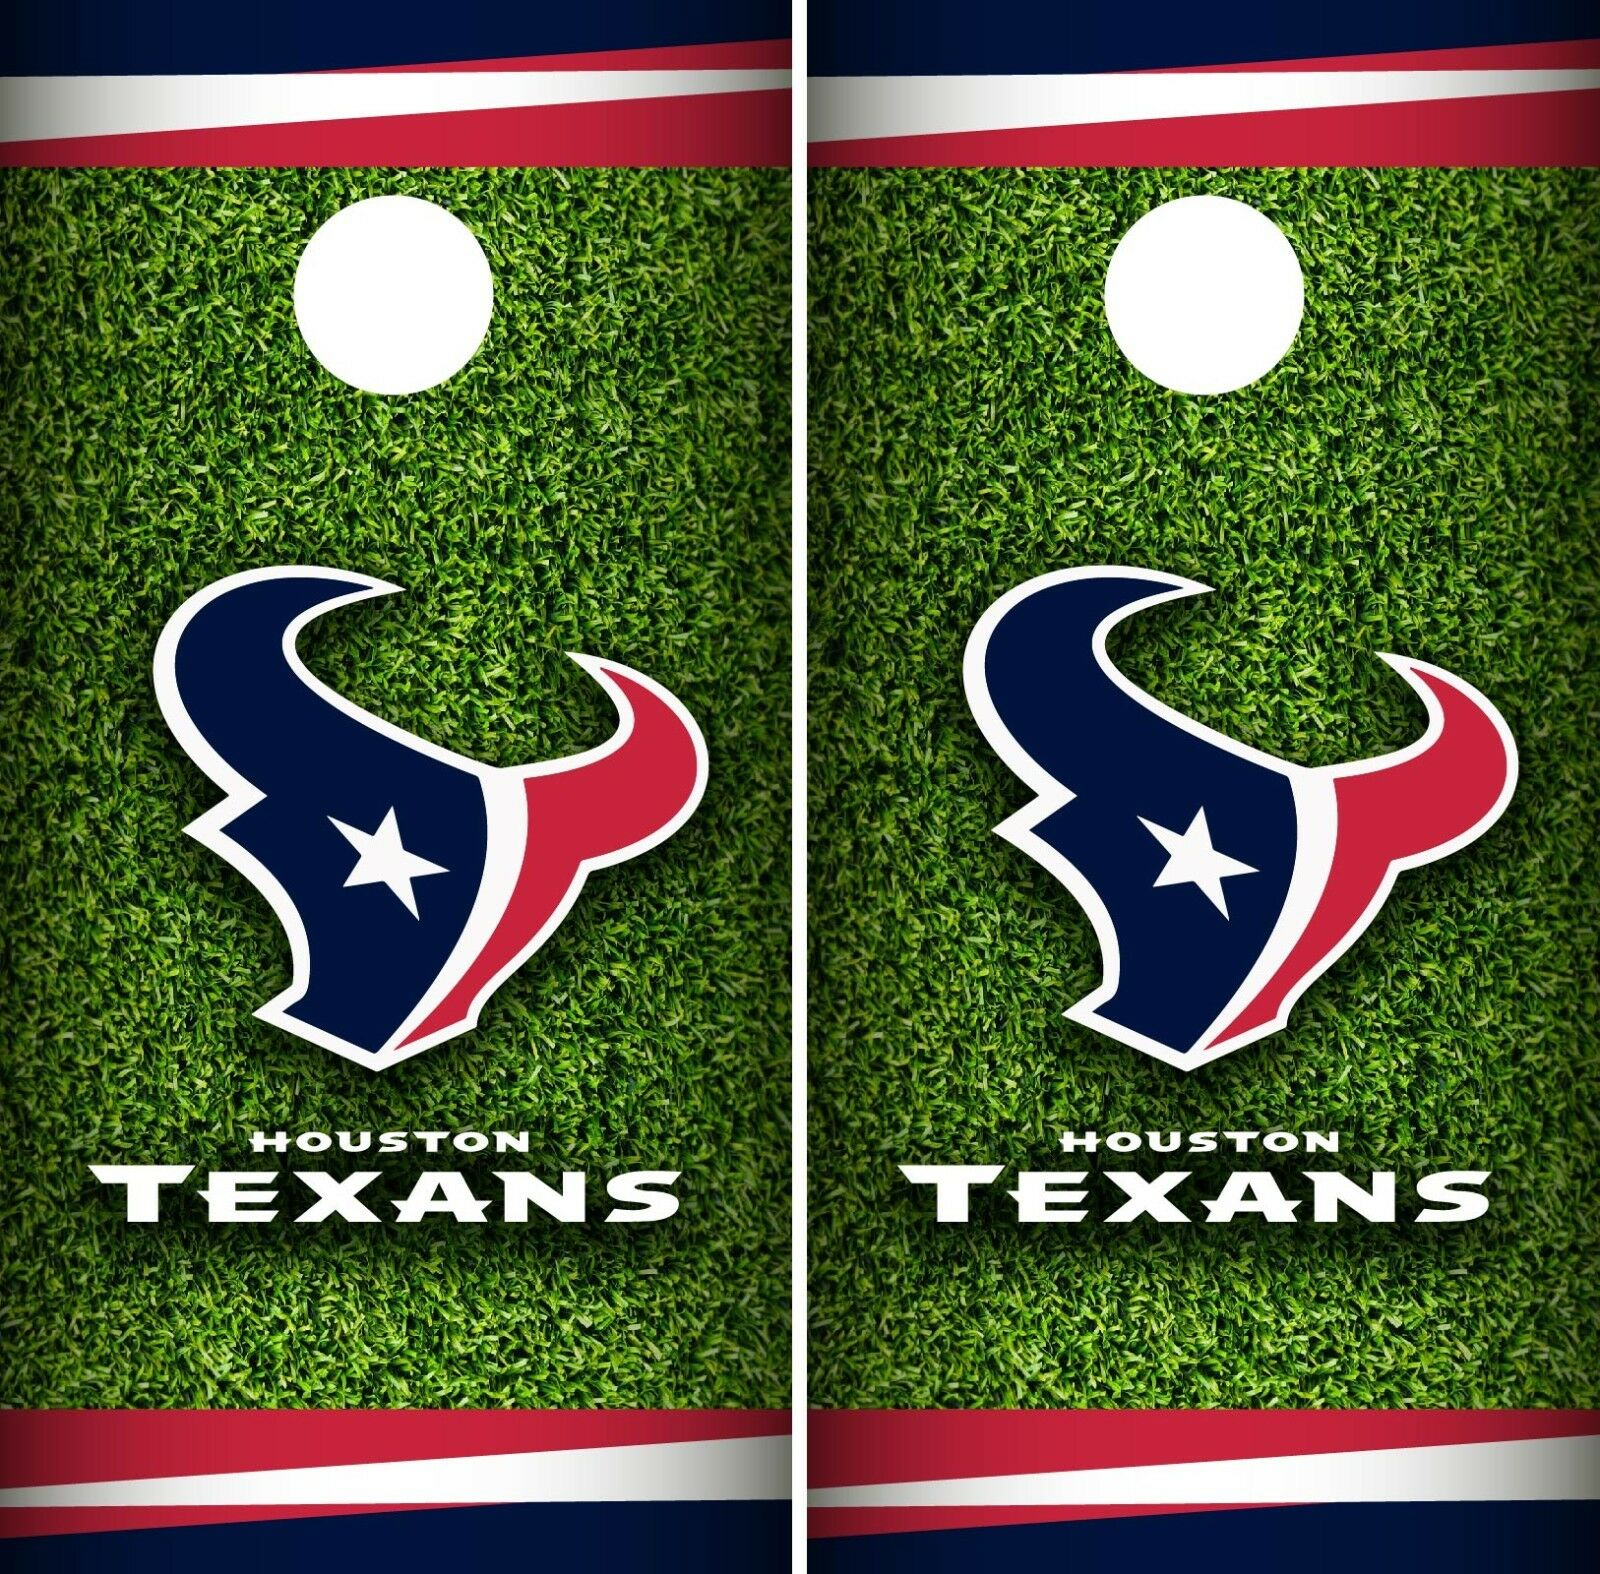 Houston Texans Field Cornhole Wrap NFL Game Skin Board  Set Vinyl Decal CO76  discount promotions